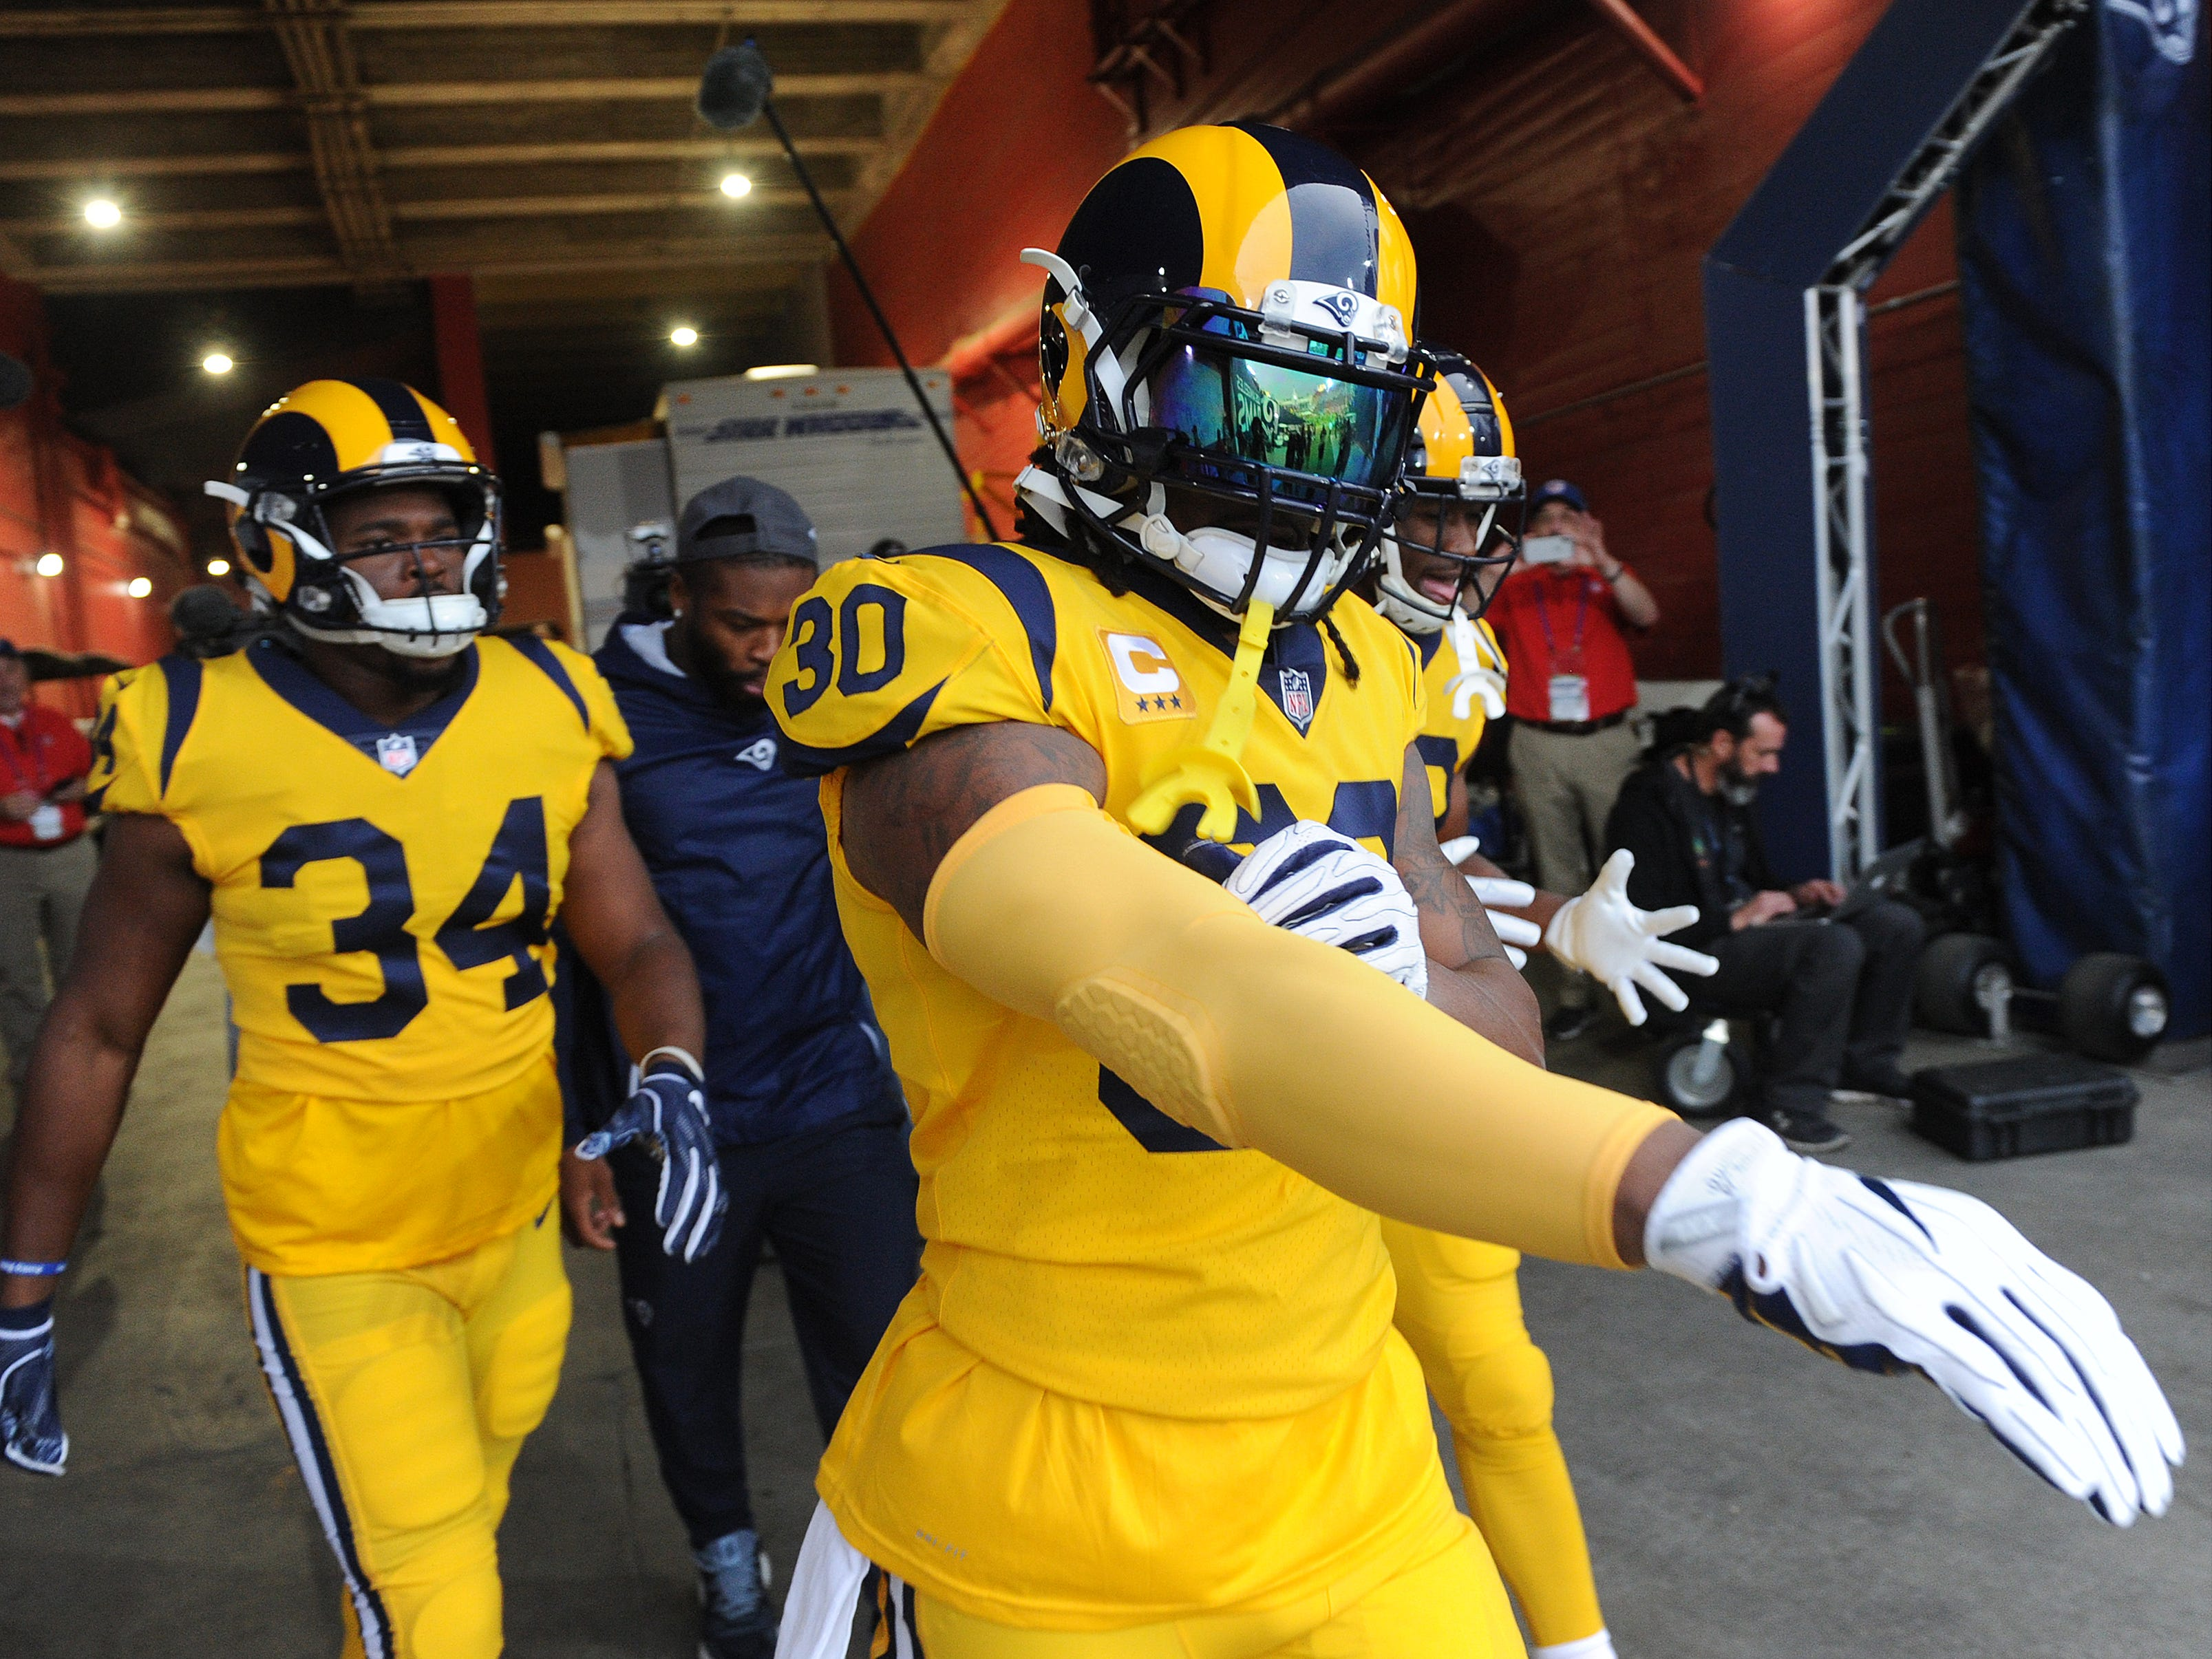 Todd Gurley, right, and Malcolm Brown (34) take the field for Monday night's game against the Chiefs